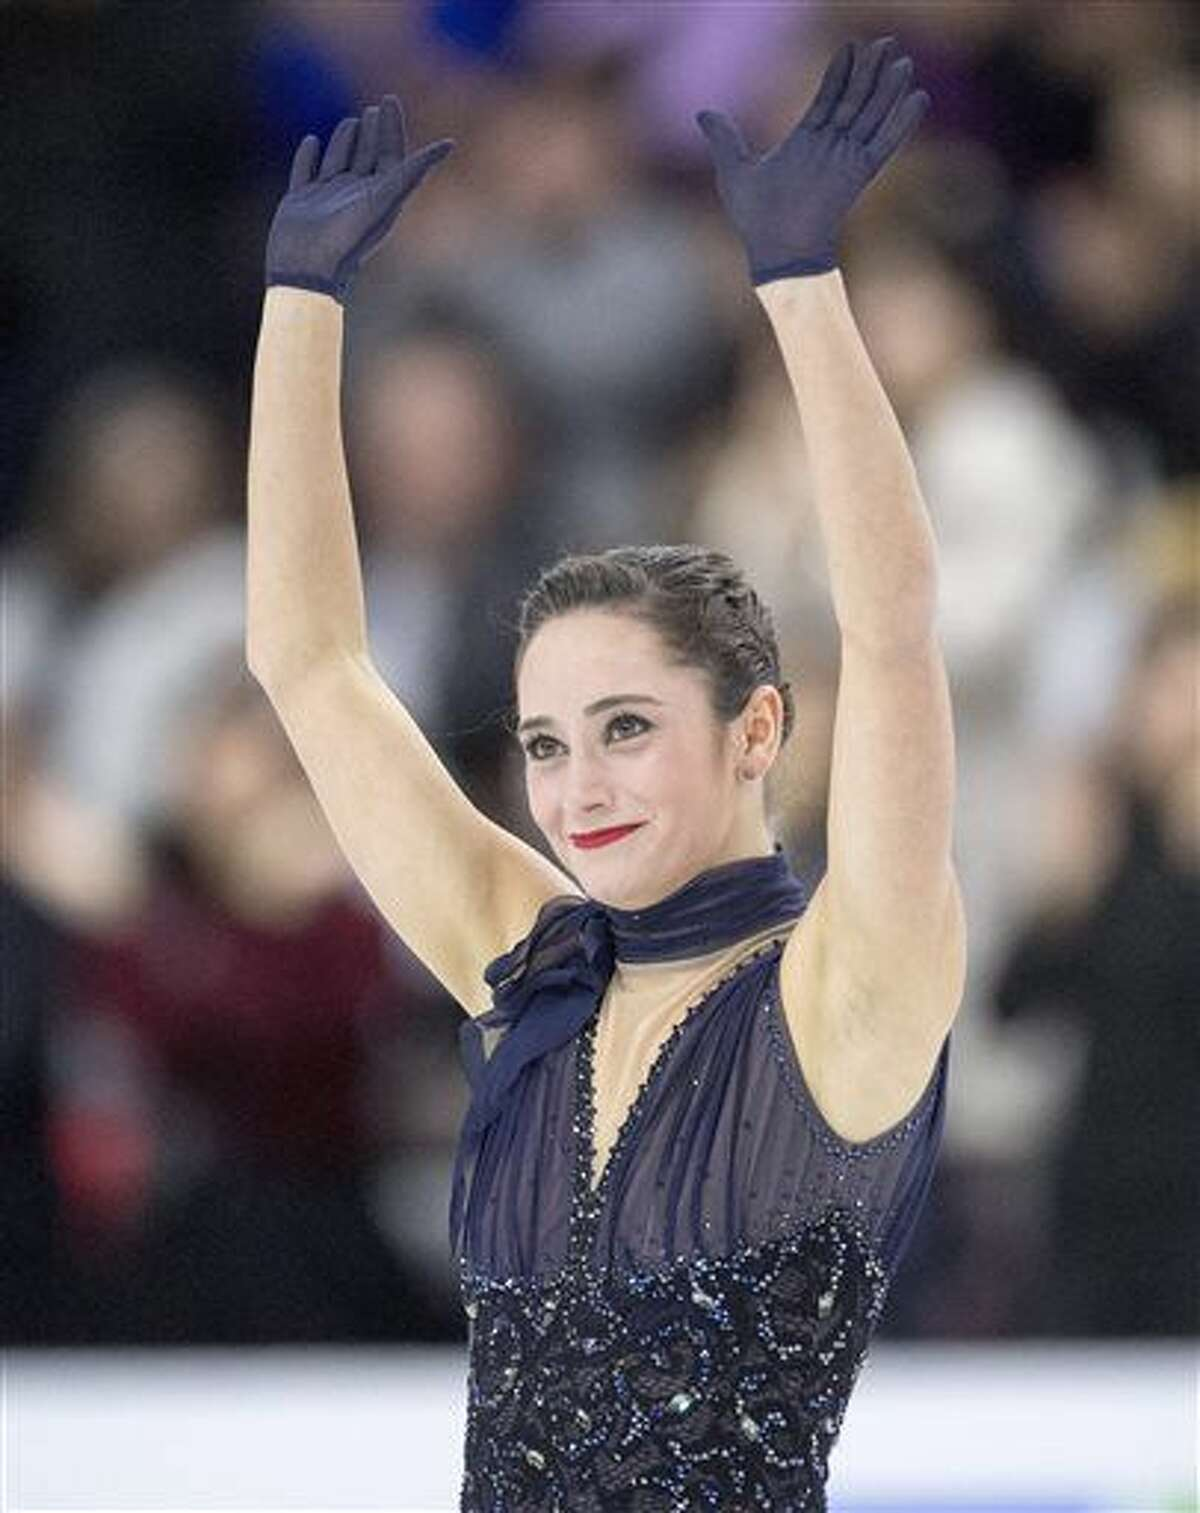 Canada's Kaetlyn Osmond waves to the crowd after skating in the ladies short program at Skate Canada International figure skating event, Friday, Oct. 28, 2016 in Mississauga, Ontario. (Frank Gunn/The Canadian Press via AP)